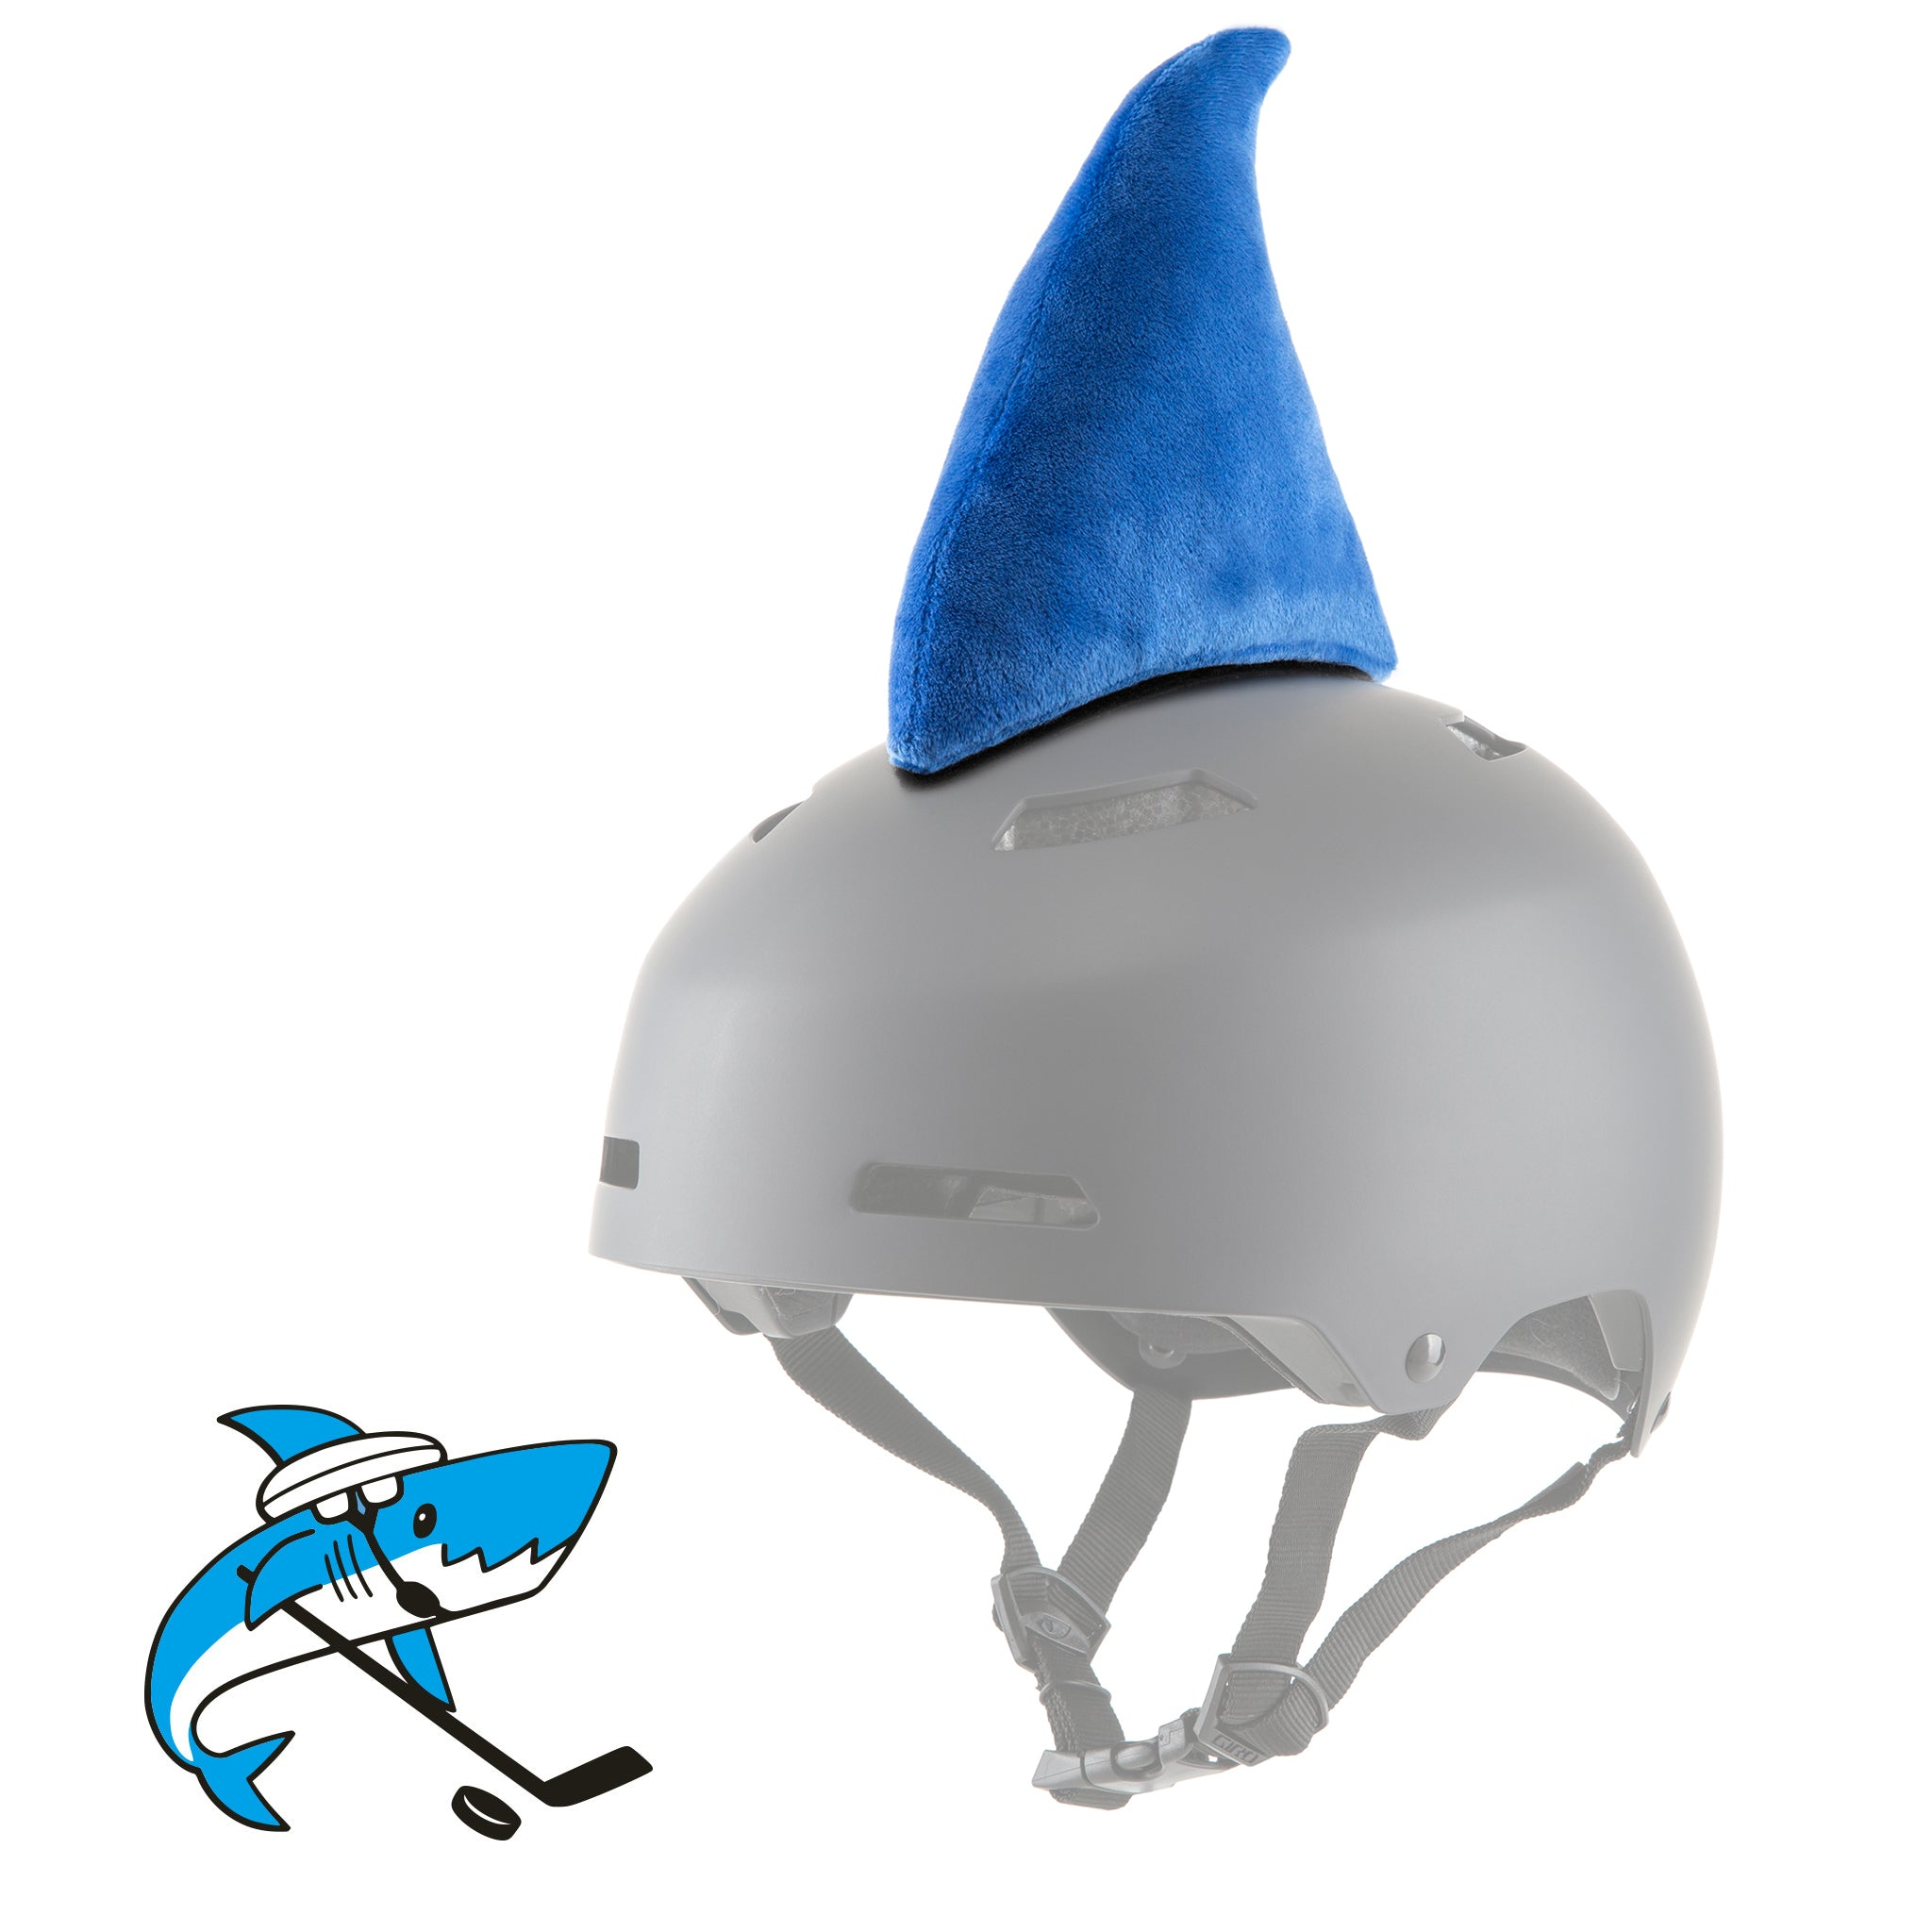 Shaka the Shark Helmet Fin/Accessory